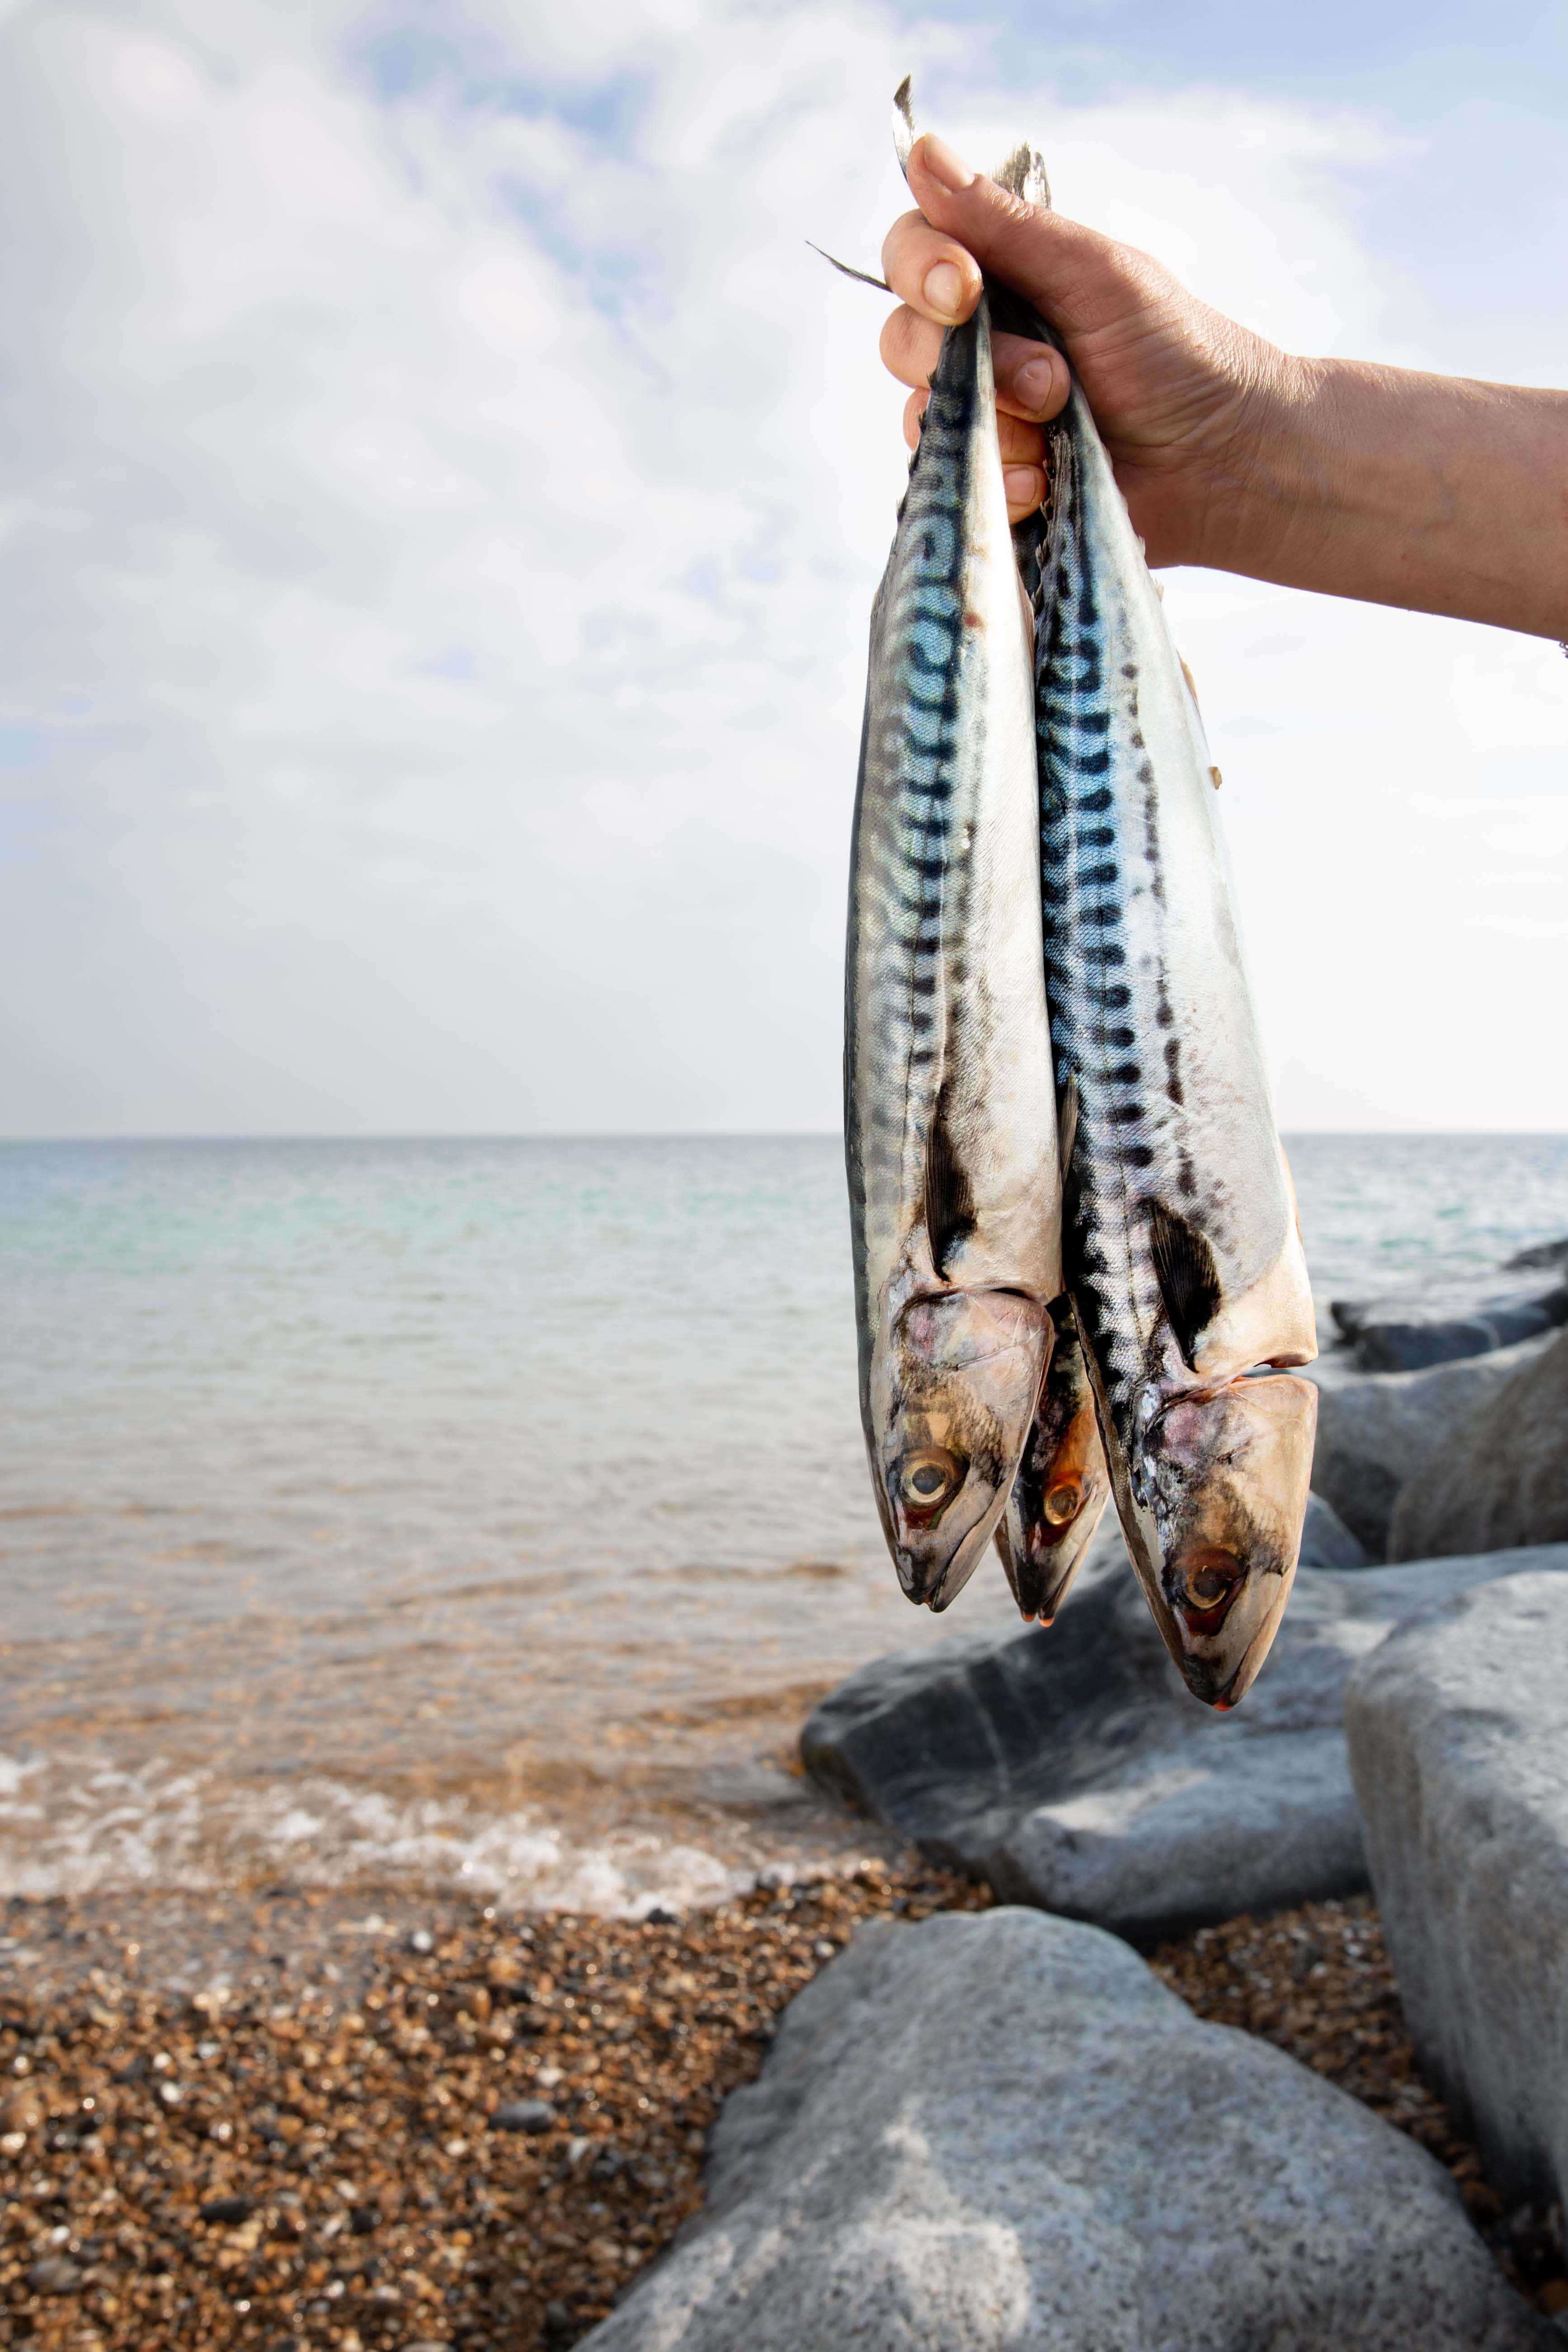 Three fresh mackerel being held up on the beach.